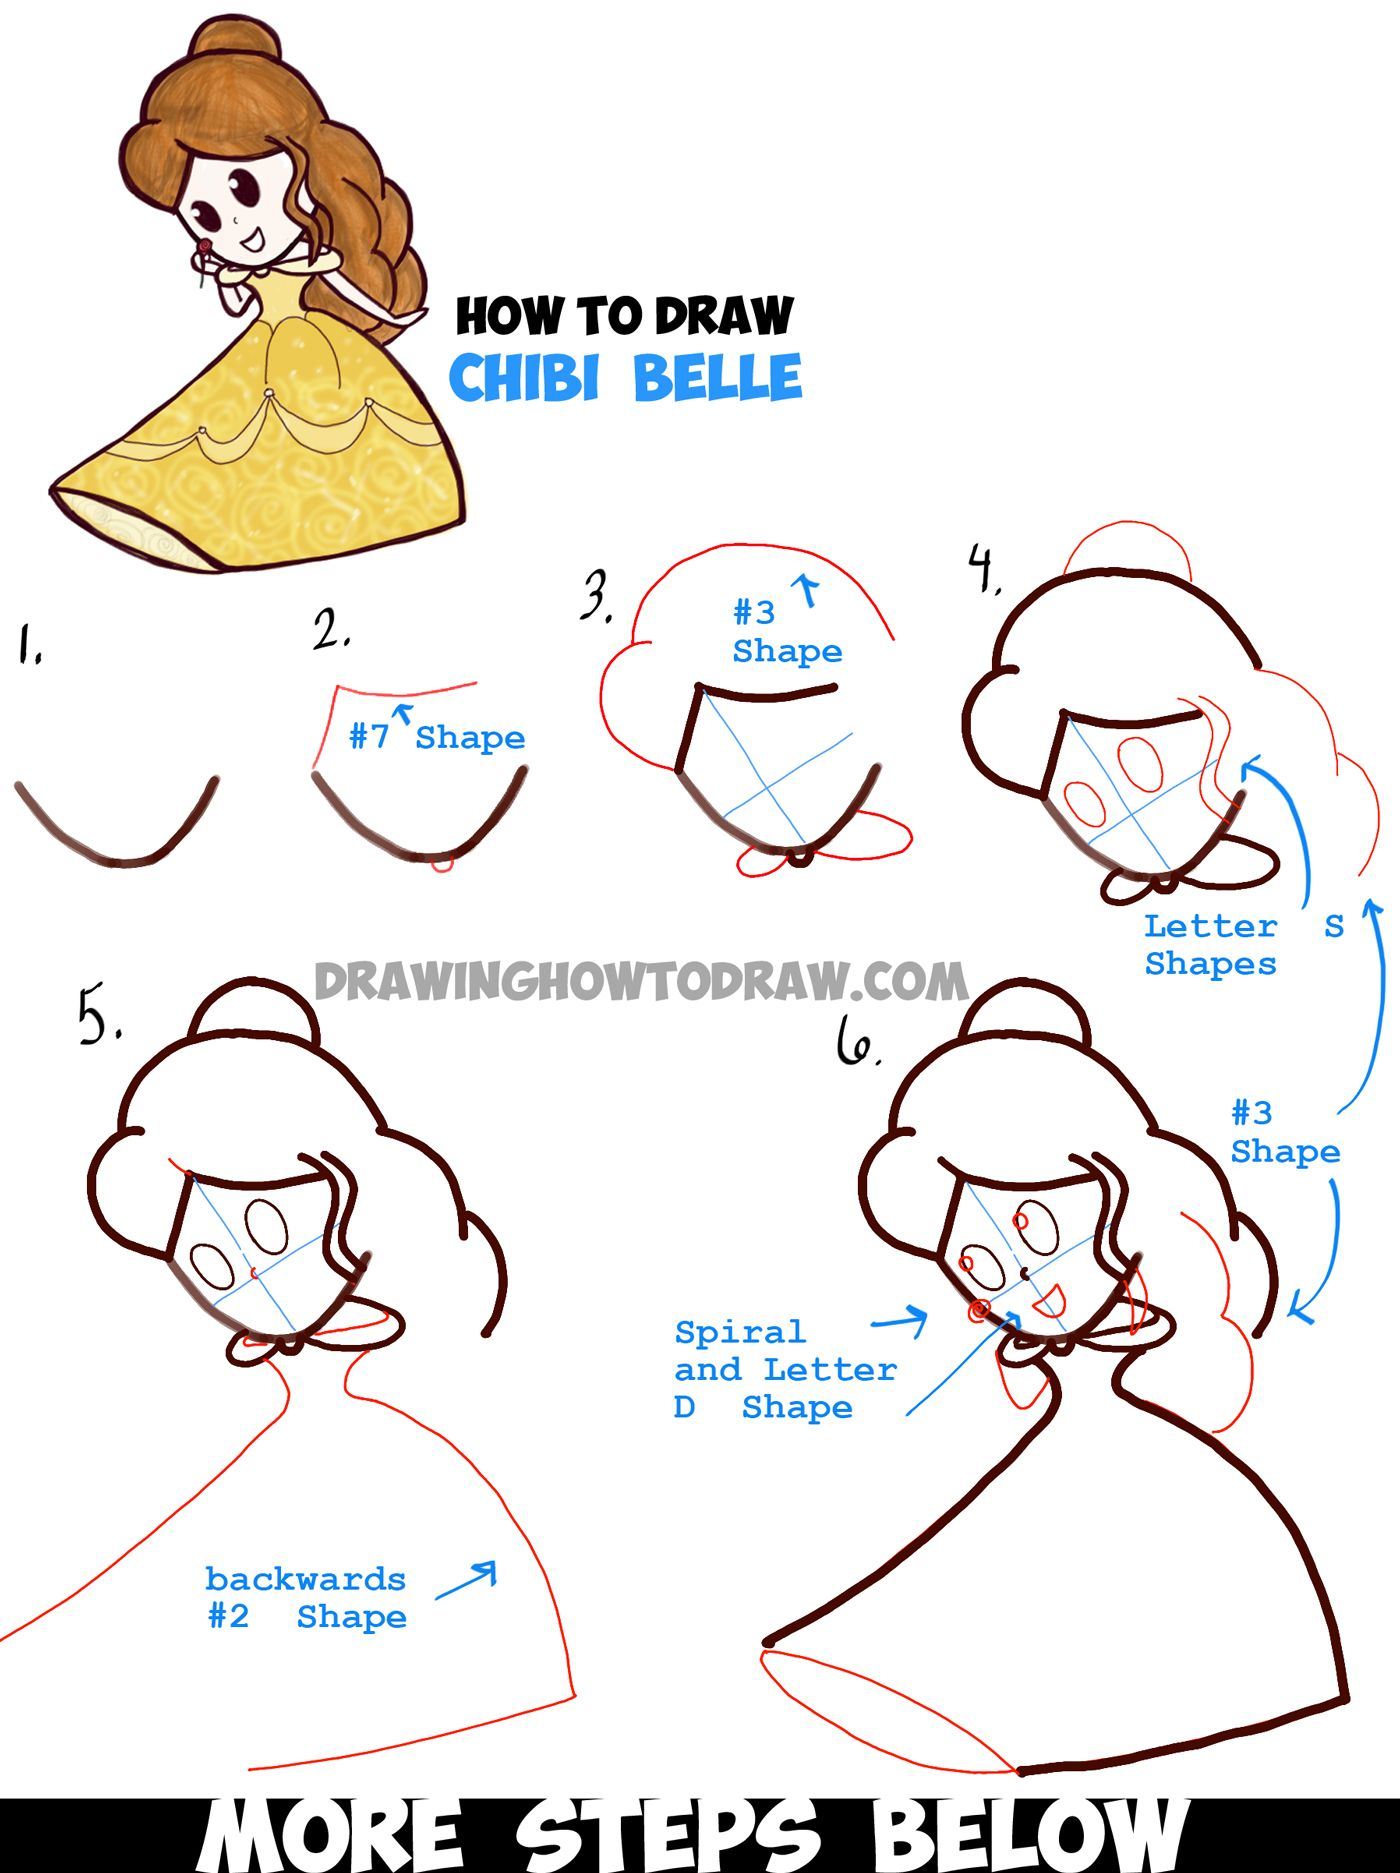 How To Draw Cute Baby Chibi Belle From Beauty And The Beast Easy Tutorial How To Draw Step By Step Drawing Tutorials Easy Drawings Cute Drawings Easy Disney Drawings